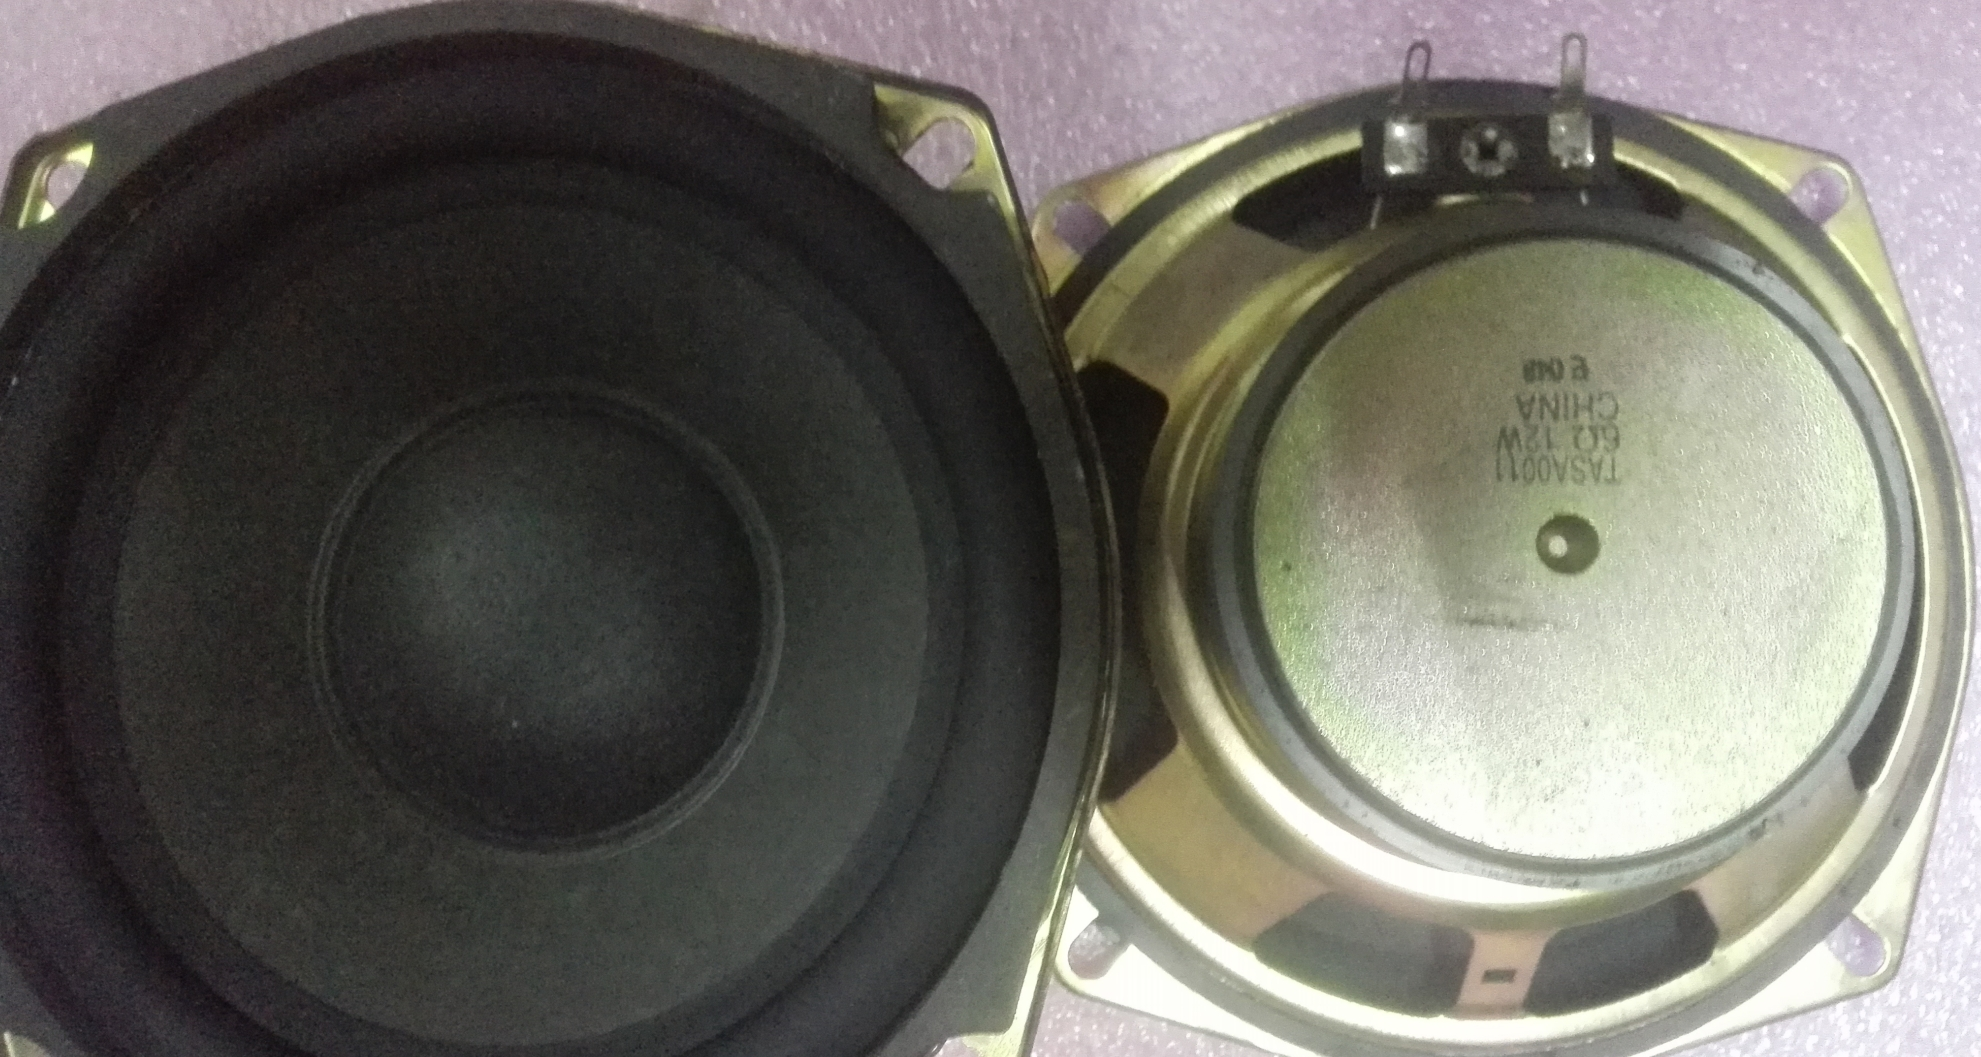 Matsushita in 5 inch rear projection TV disassemble woofers on the price of a car audio HIFI value DIY